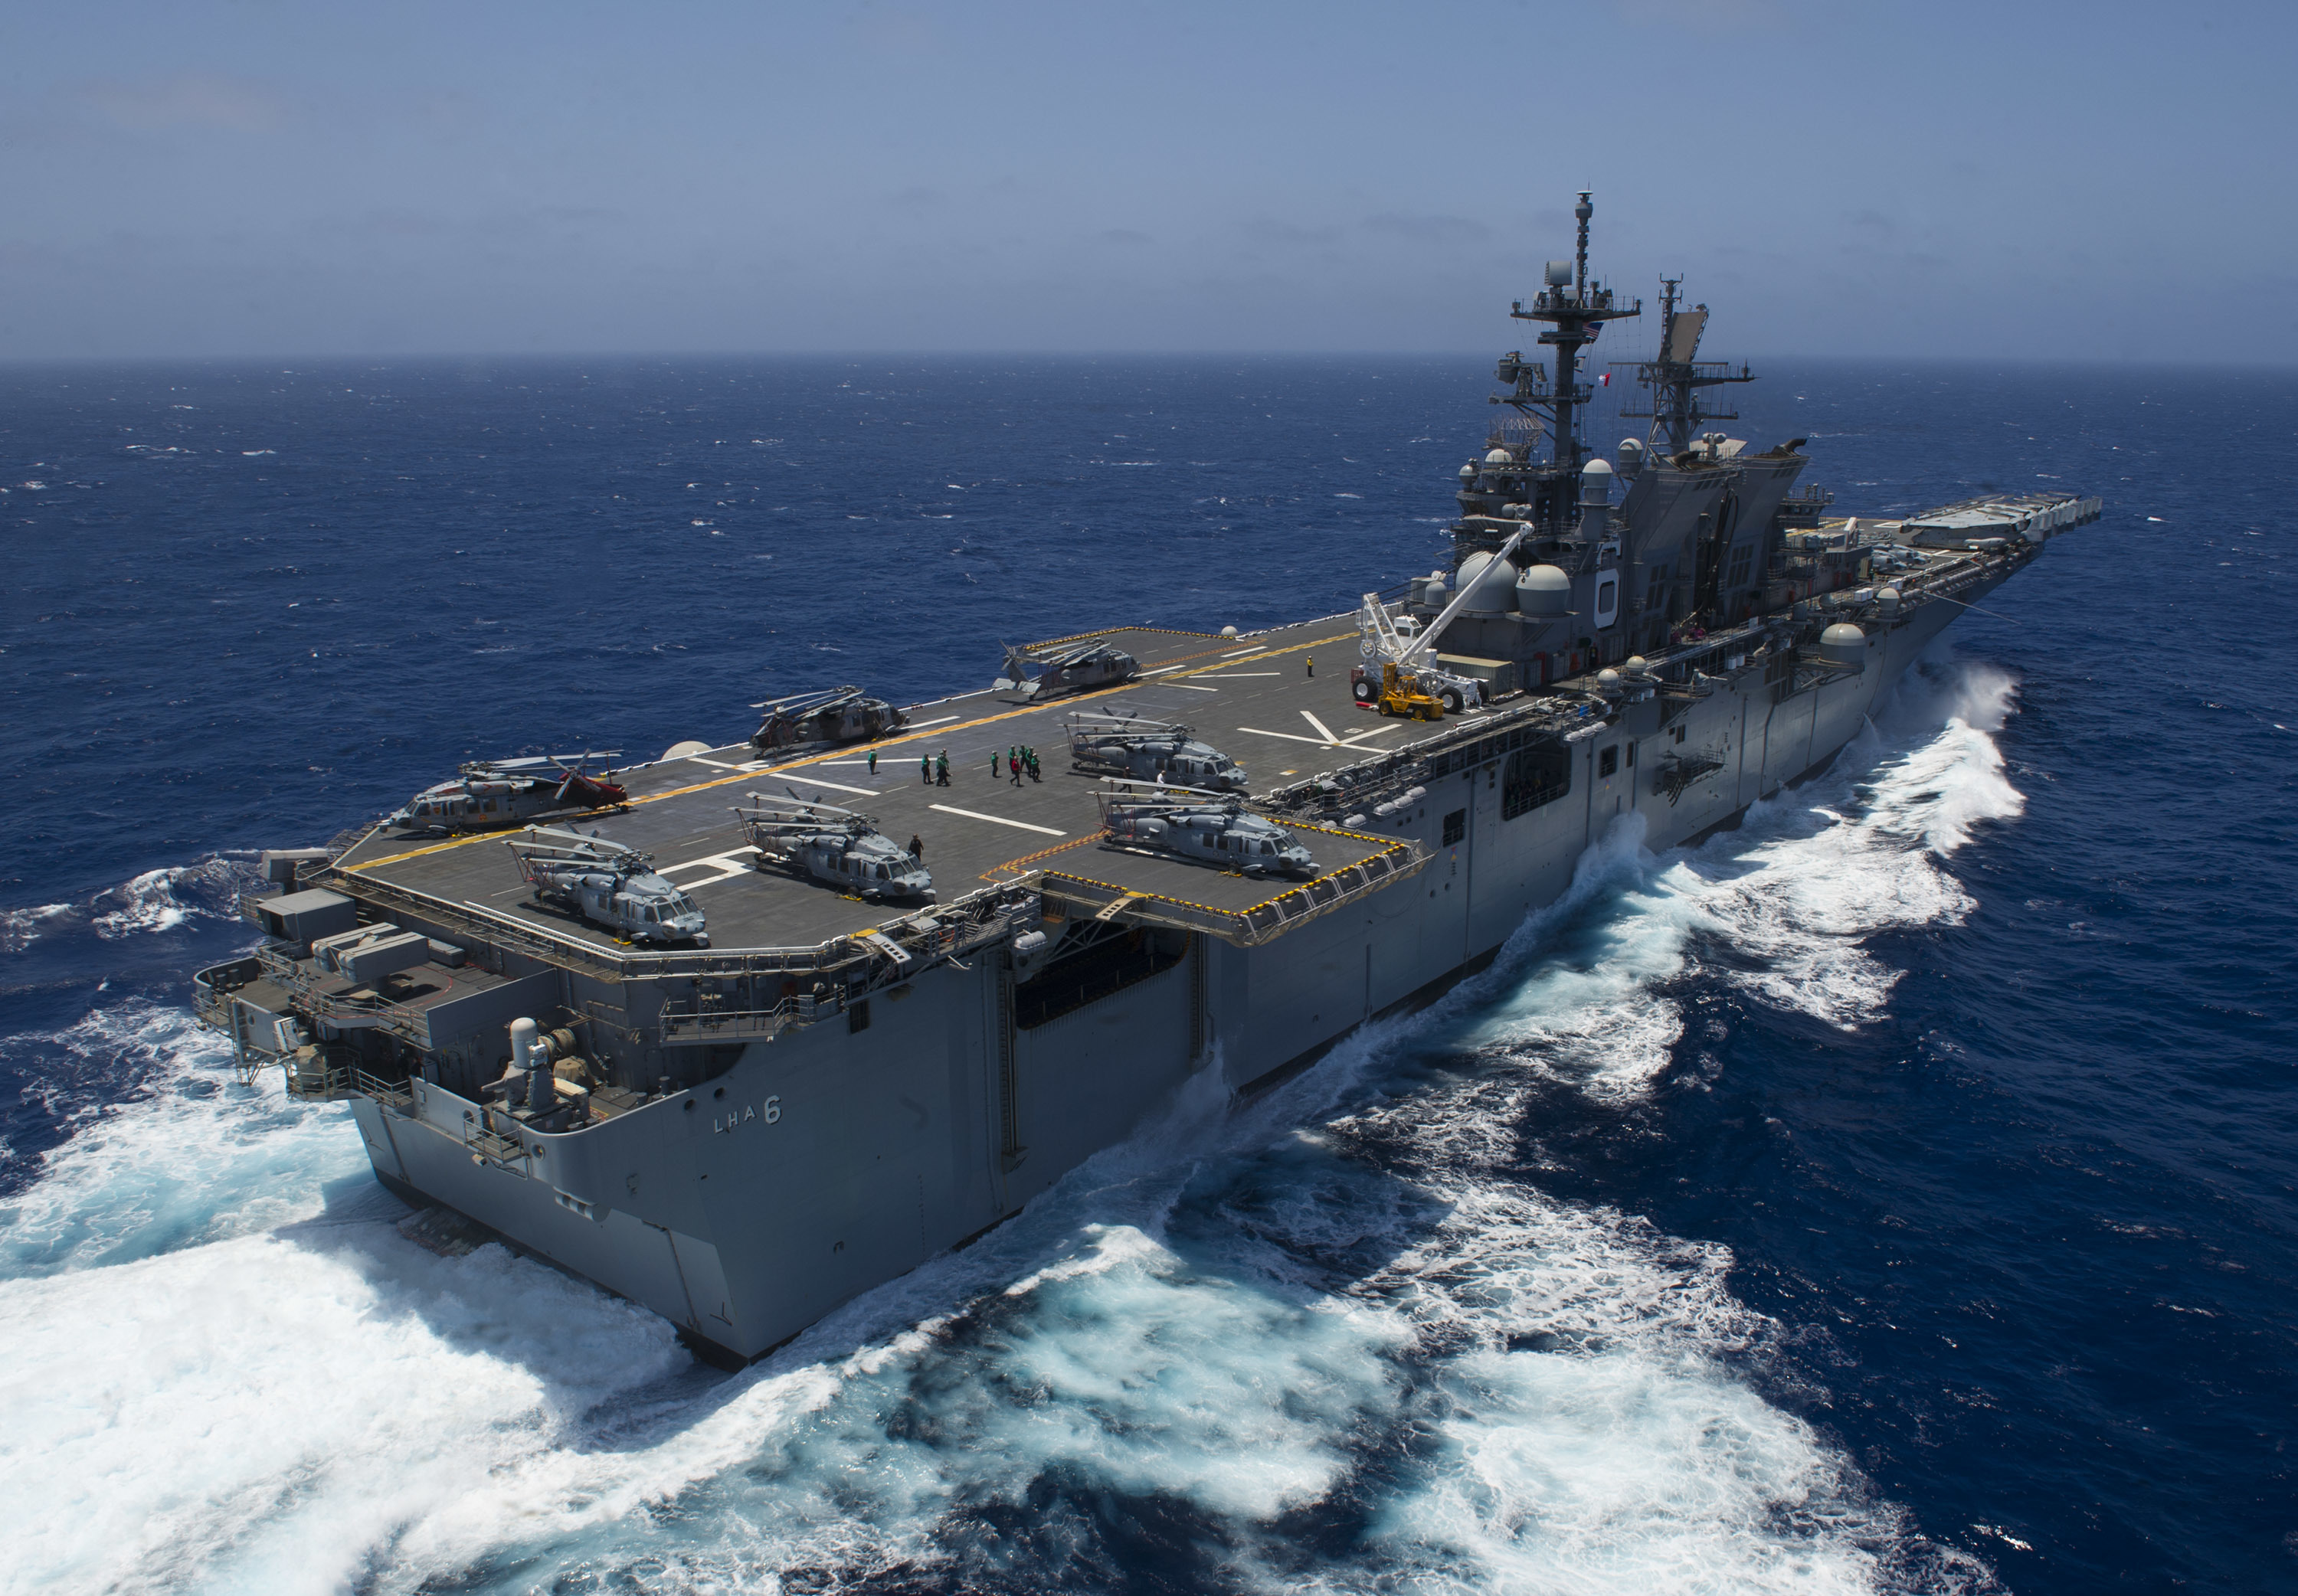 The amphibious assault ship USS America (LHA 6) conducts flight operations while underway to Rim of the Pacific (RIMPAC) 2016. US Navy photo.